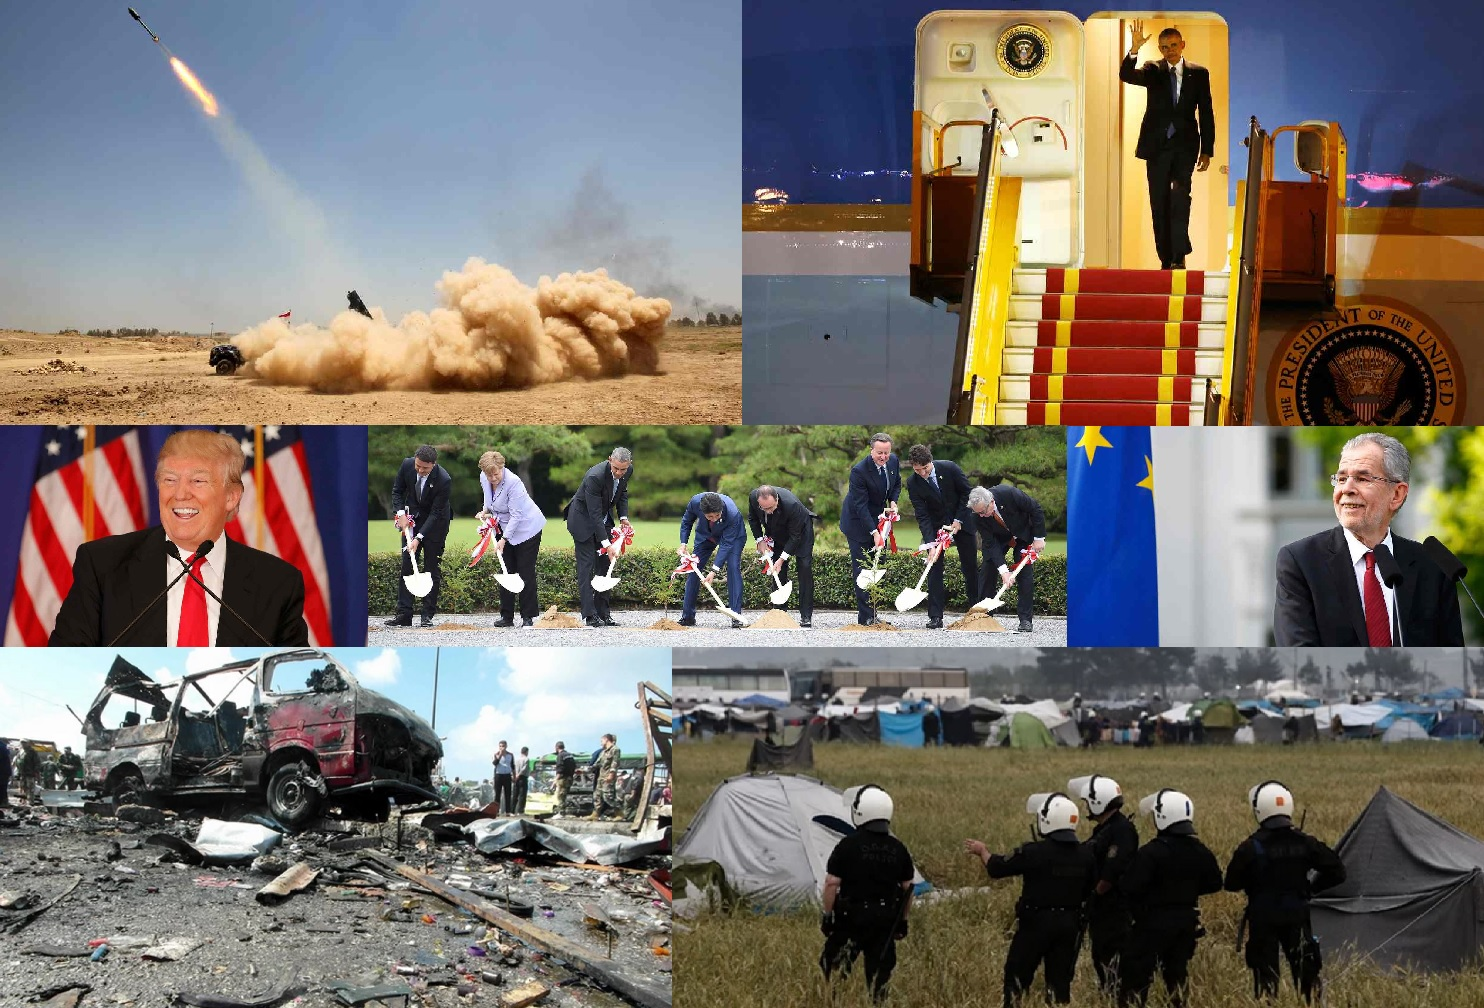 From left to right: In the top row, rocket fired in Iraq's Anbar province by pro-government forces trying to retake Fallujah from ISIS, and Obama lands in Vietnam. In the middle row,Trump speaking at one of his rallies, G7 leaders planting trees in Kashikojima,Japan, and Austria's new president,Alexander Van der Bellen. In the bottom row, Syrian coastal city hit by ISIS explosion, and riot police in Greece ordering refugees to leave. Cover credits: The Guardian,Reuters (collage)